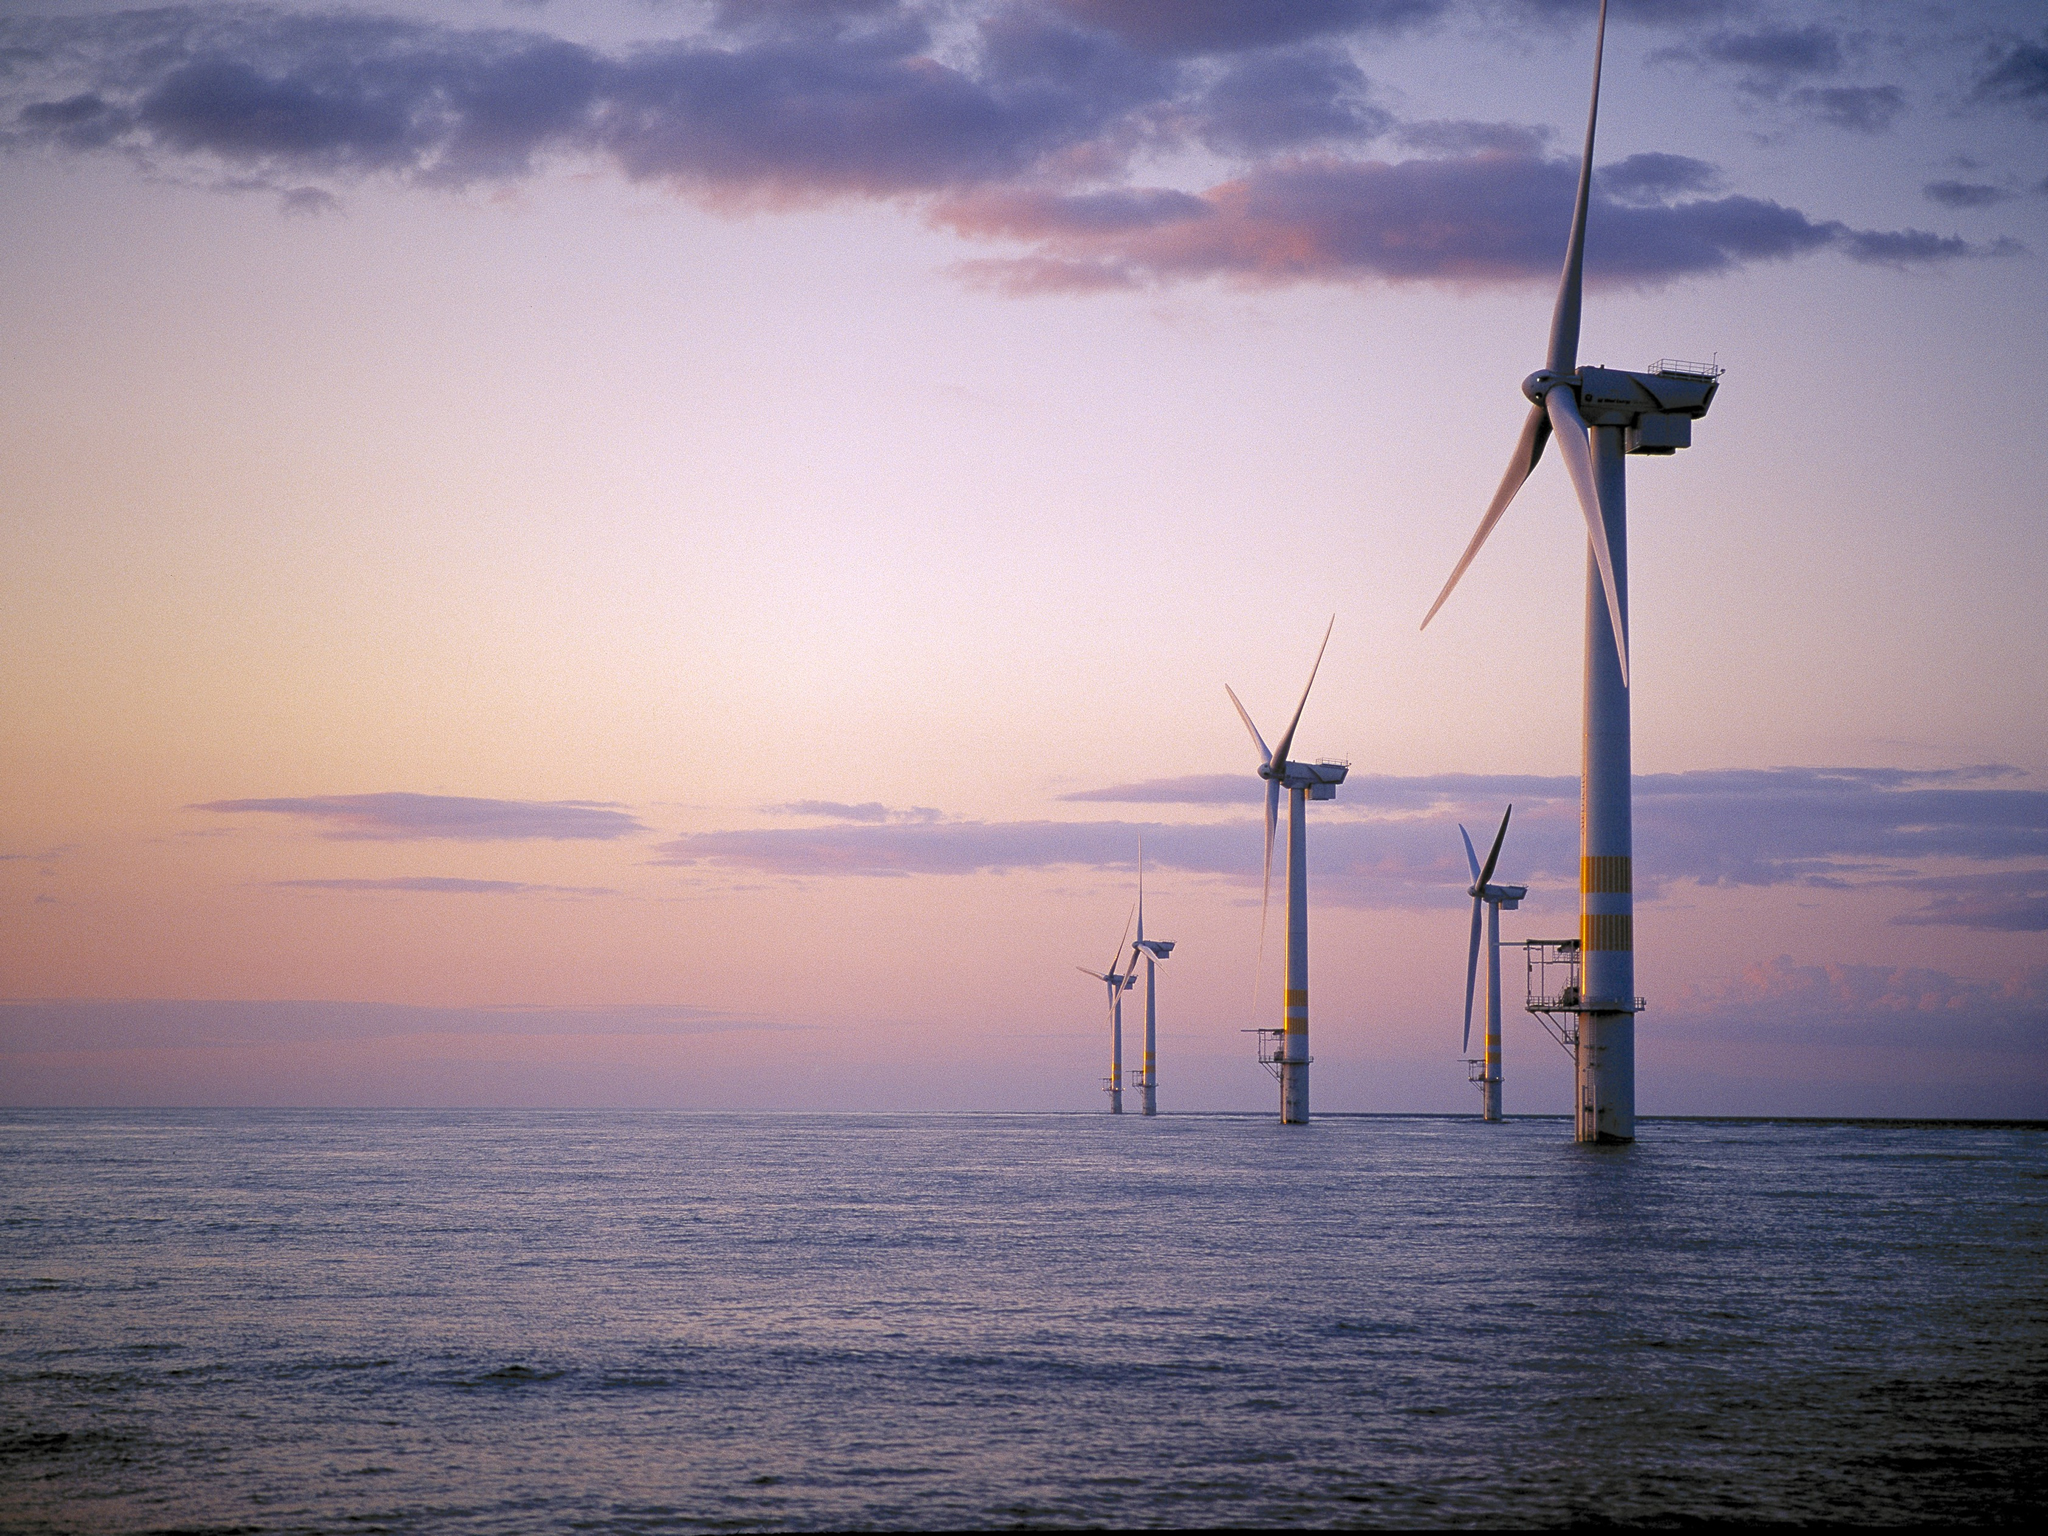 fshore wind must be subsidy free soon says Scottish Power